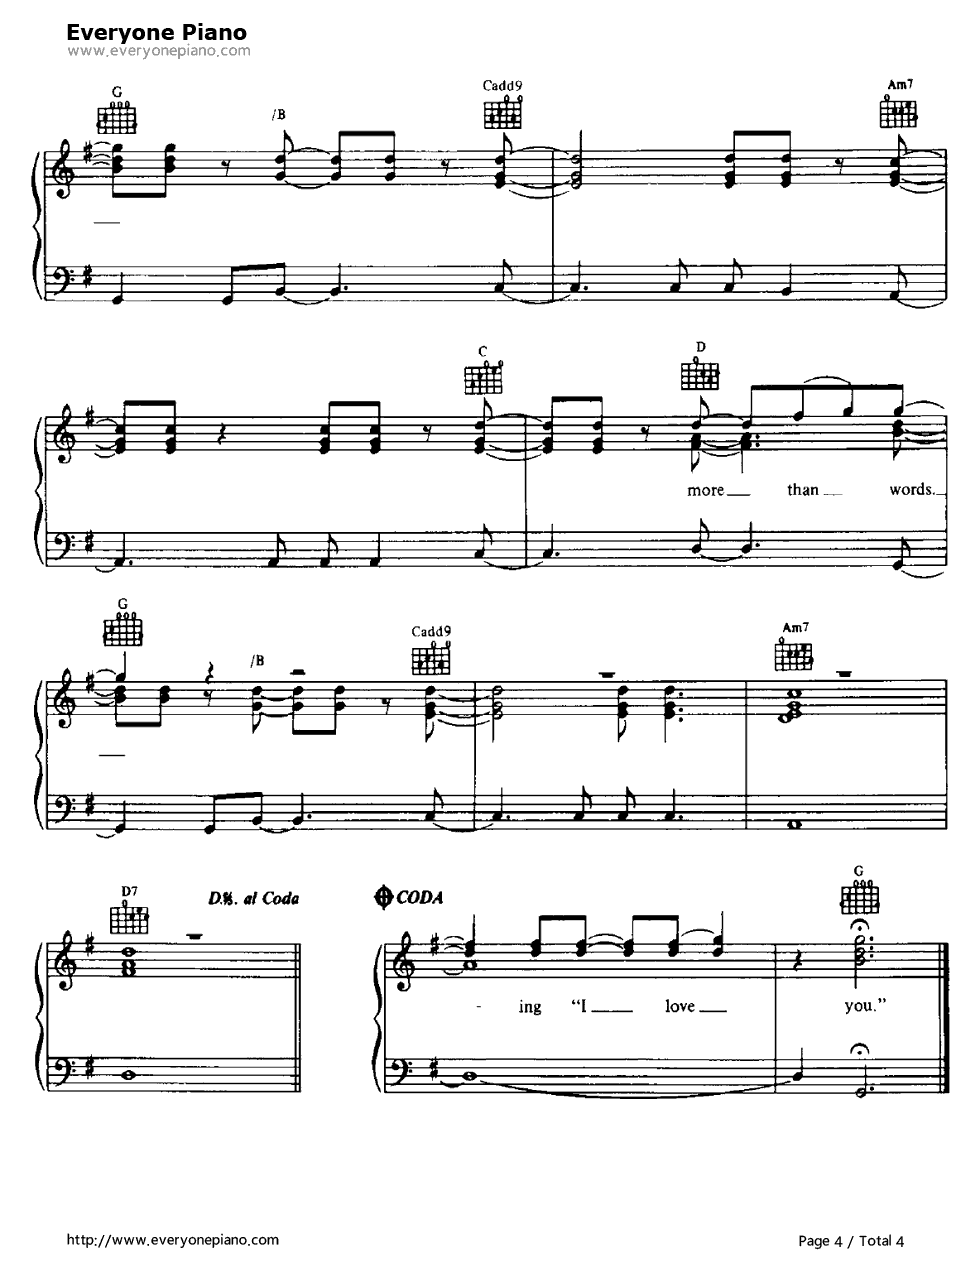 More than words extreme stave preview 4 free piano sheet music listen now print sheet more than words extreme stave preview 4 hexwebz Images